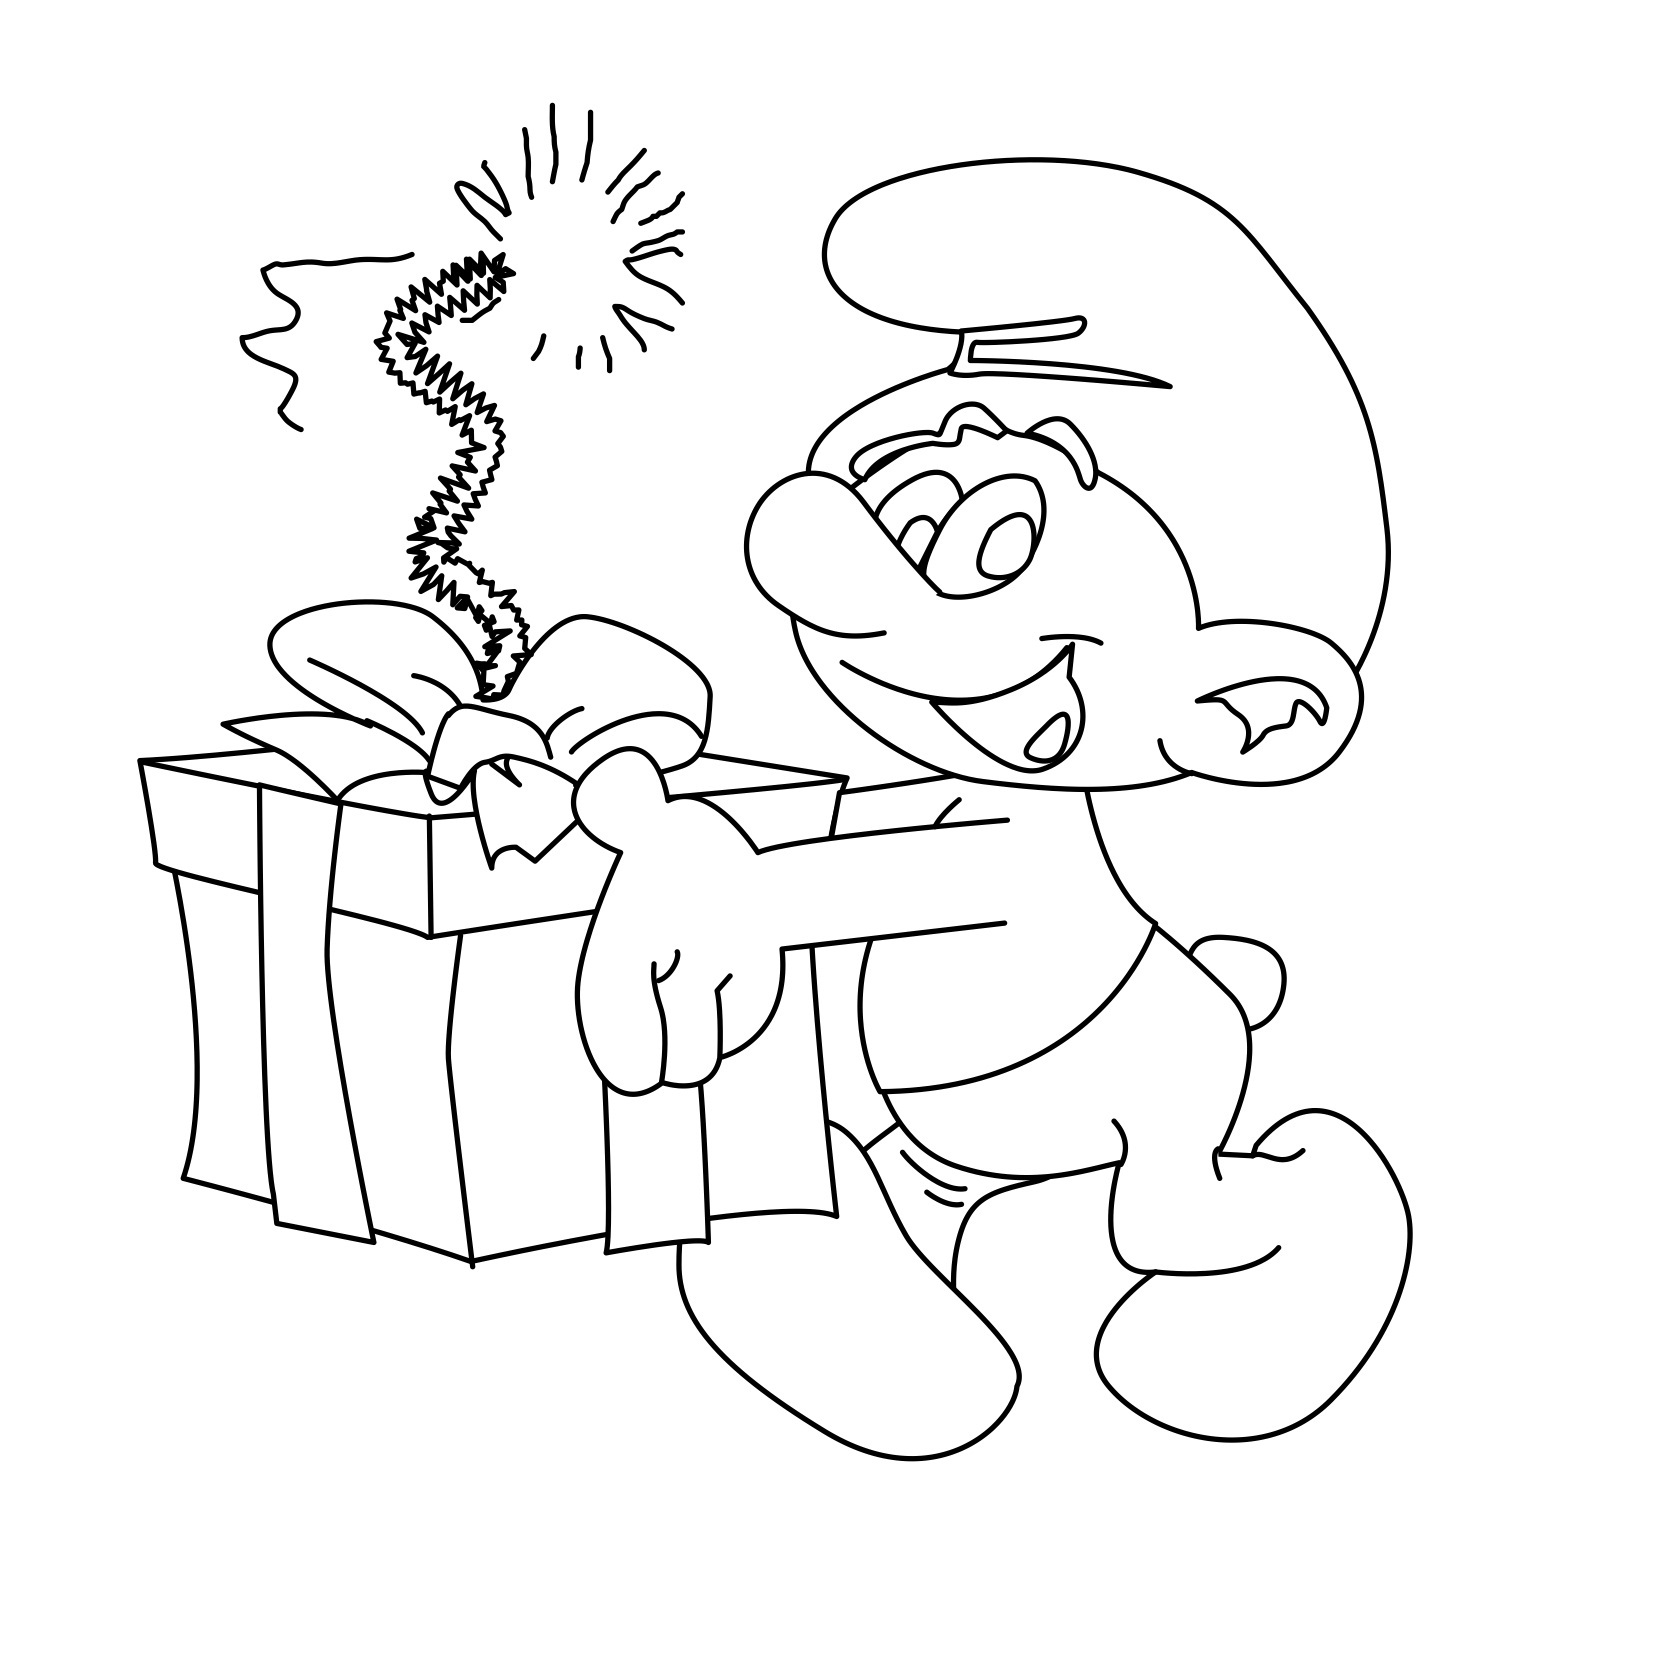 Free Printable Smurf Coloring Pages For Kids Coloring Pages Of Free